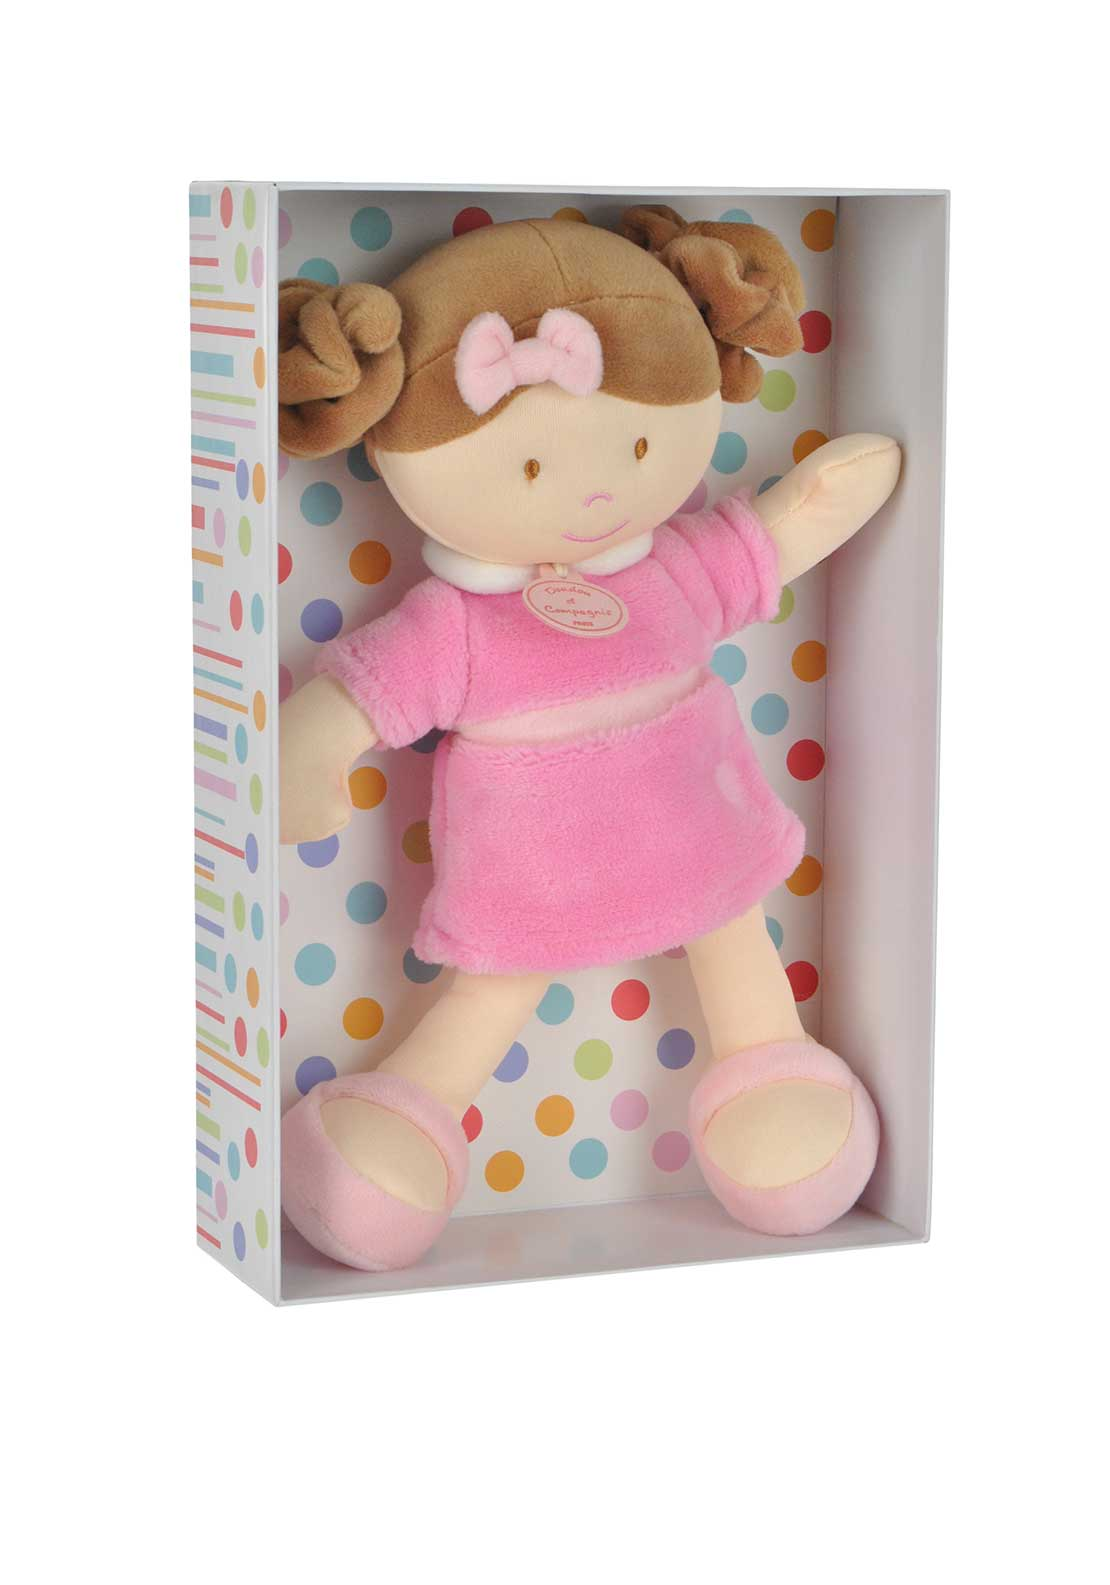 Doudou et Compagnie Soft Toy Dolly, Pink